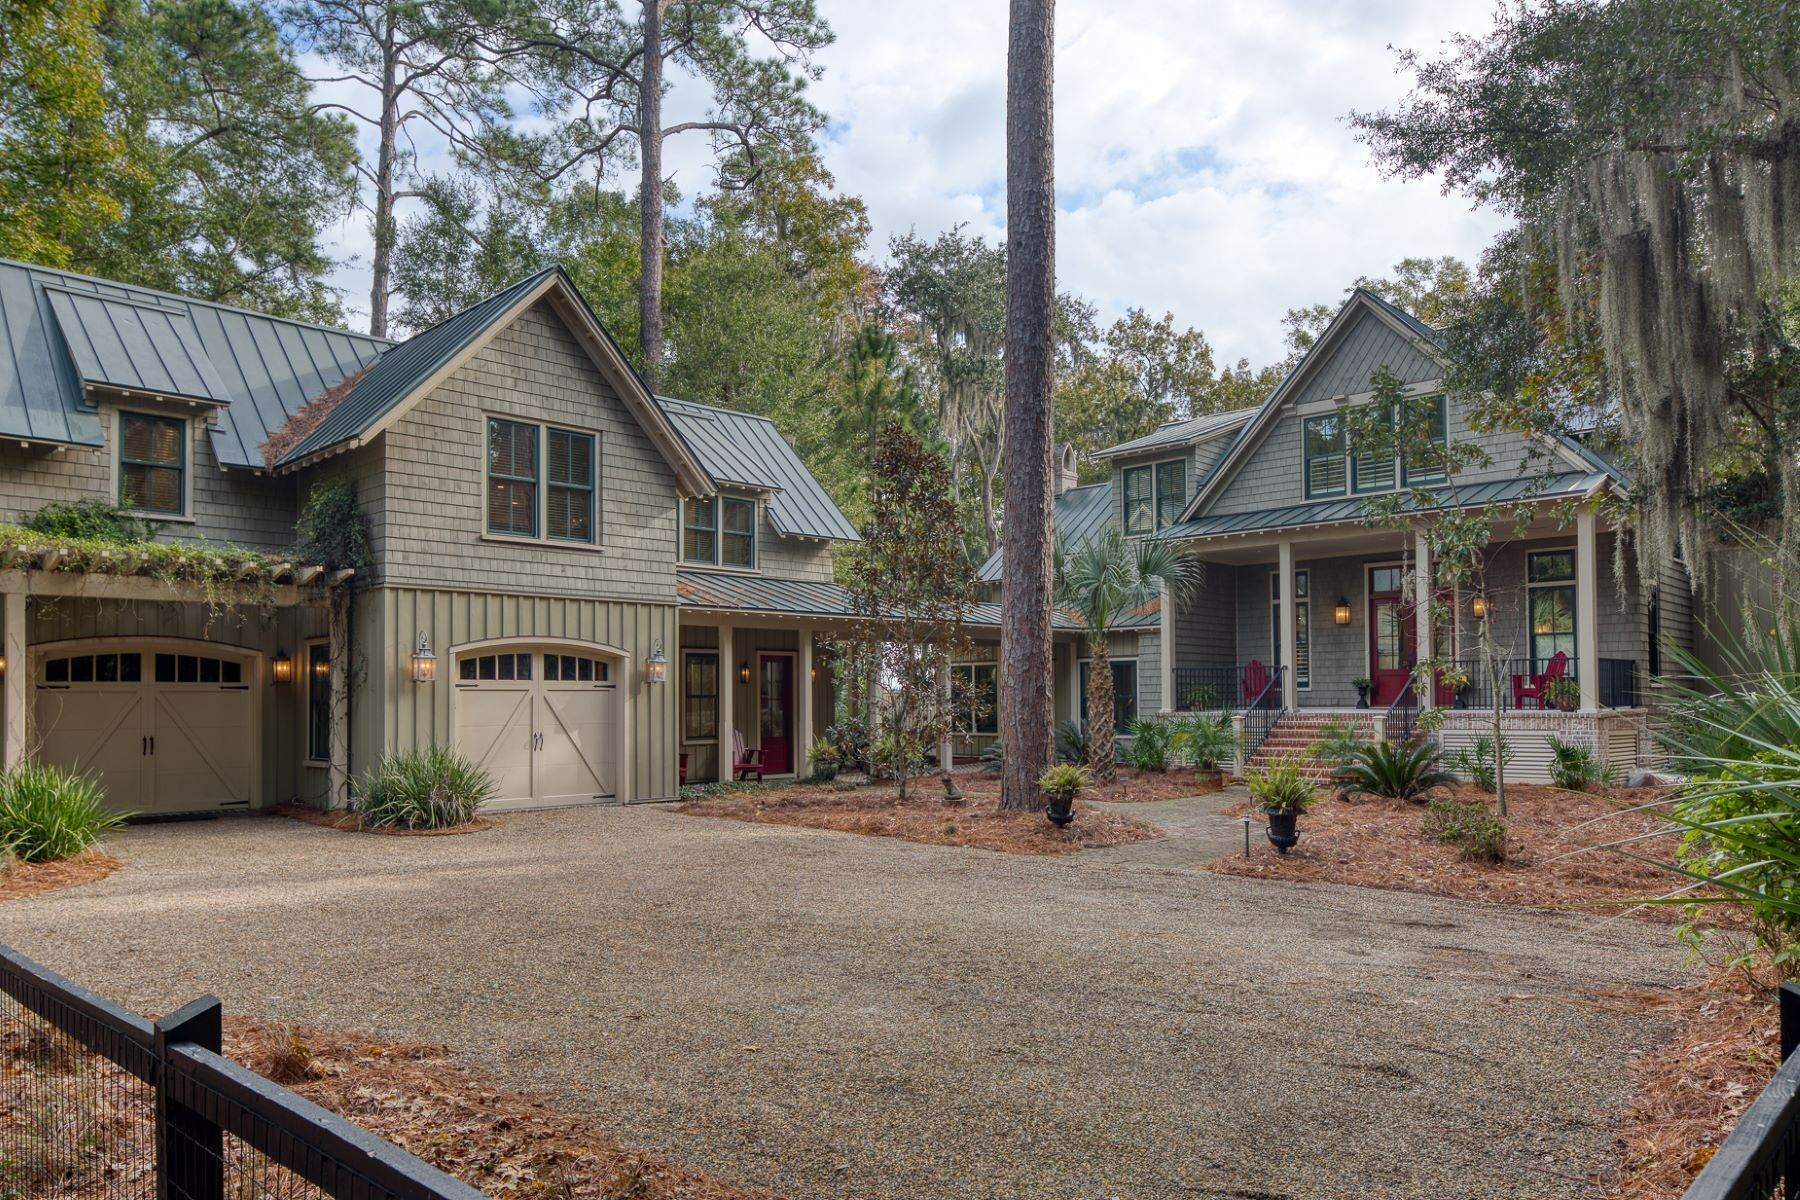 Property for Sale at Endless May River Views! 75 Greenleaf Road Bluffton, South Carolina 29910 United States